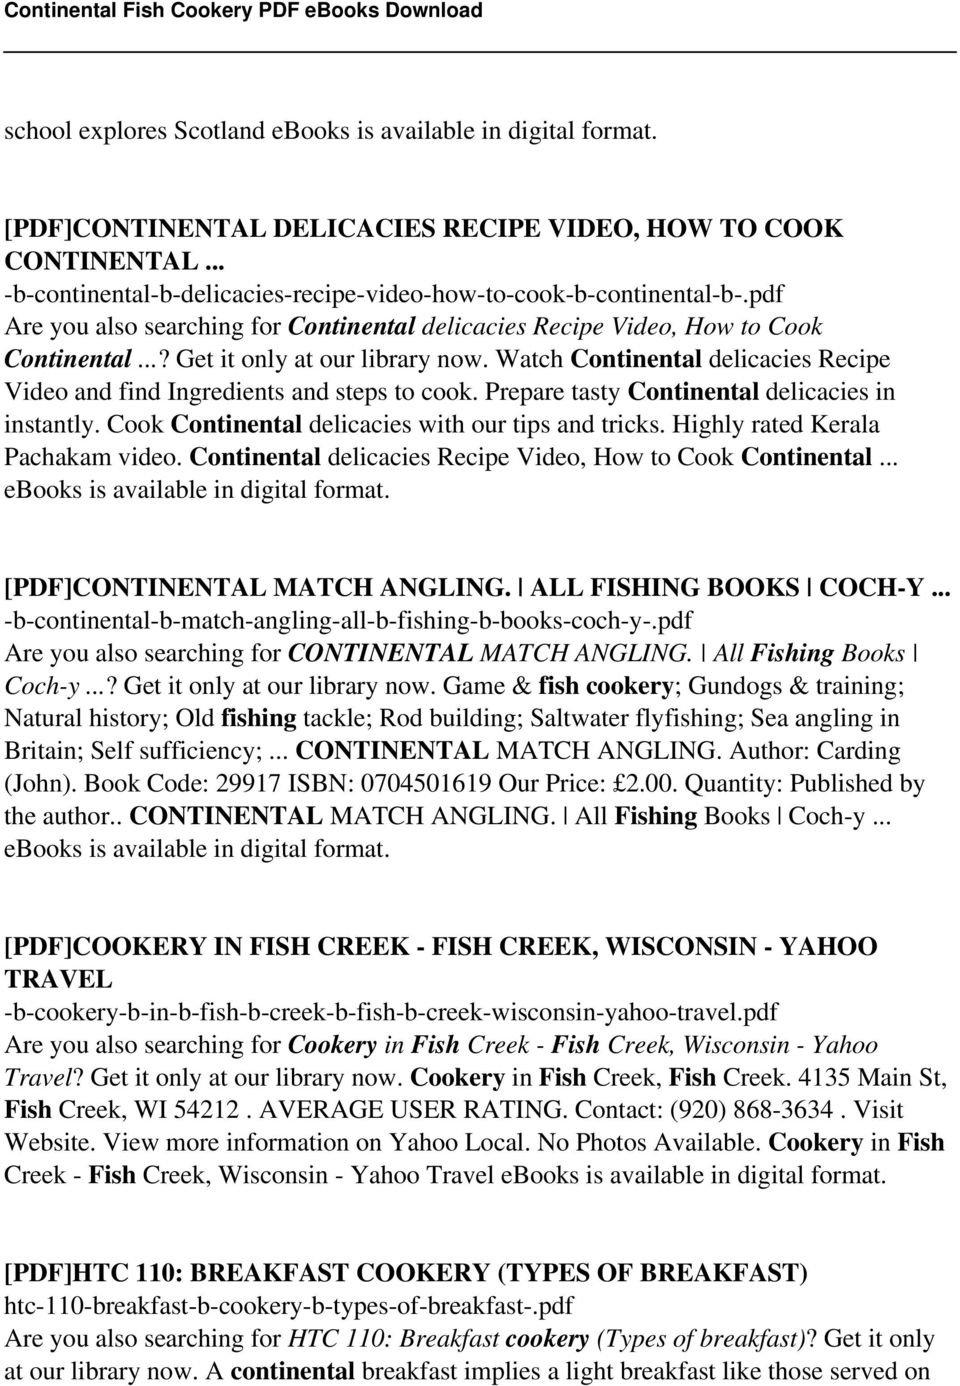 Continental fish cookery pdf pdf watch continental delicacies recipe video and find ingredients and steps to cook prepare tasty continental fandeluxe Gallery